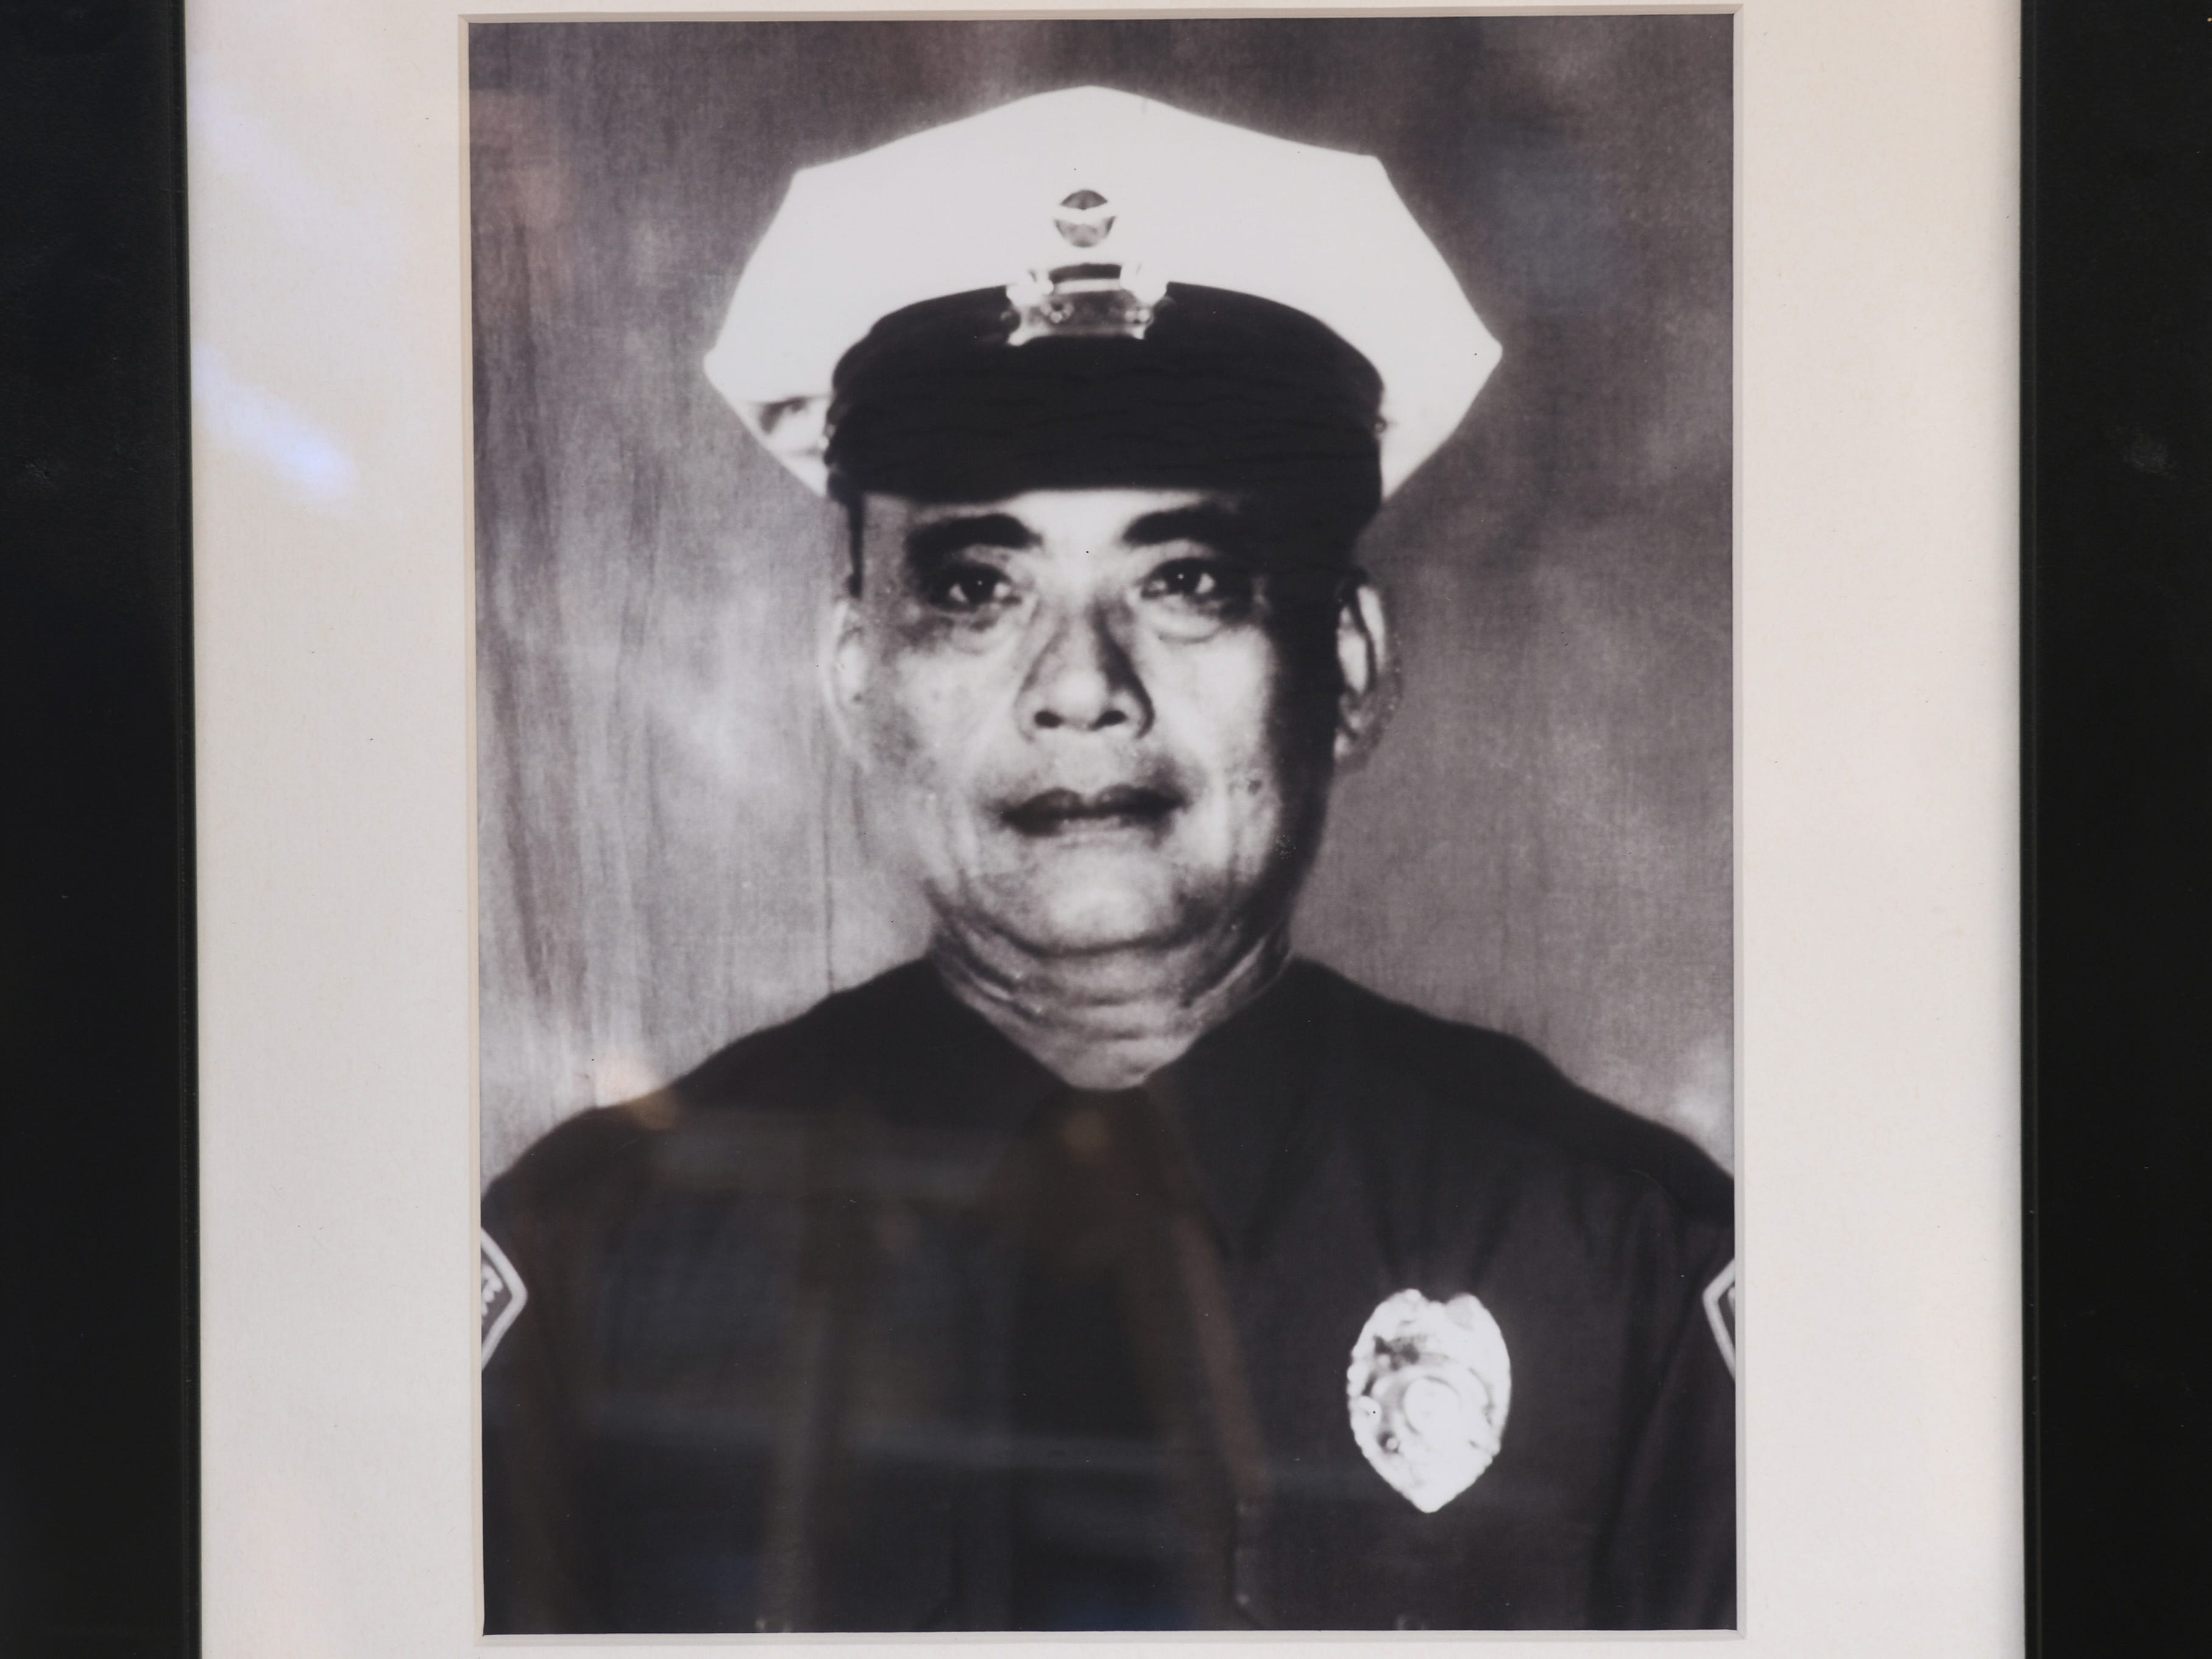 Police Officer Francisco Taitague